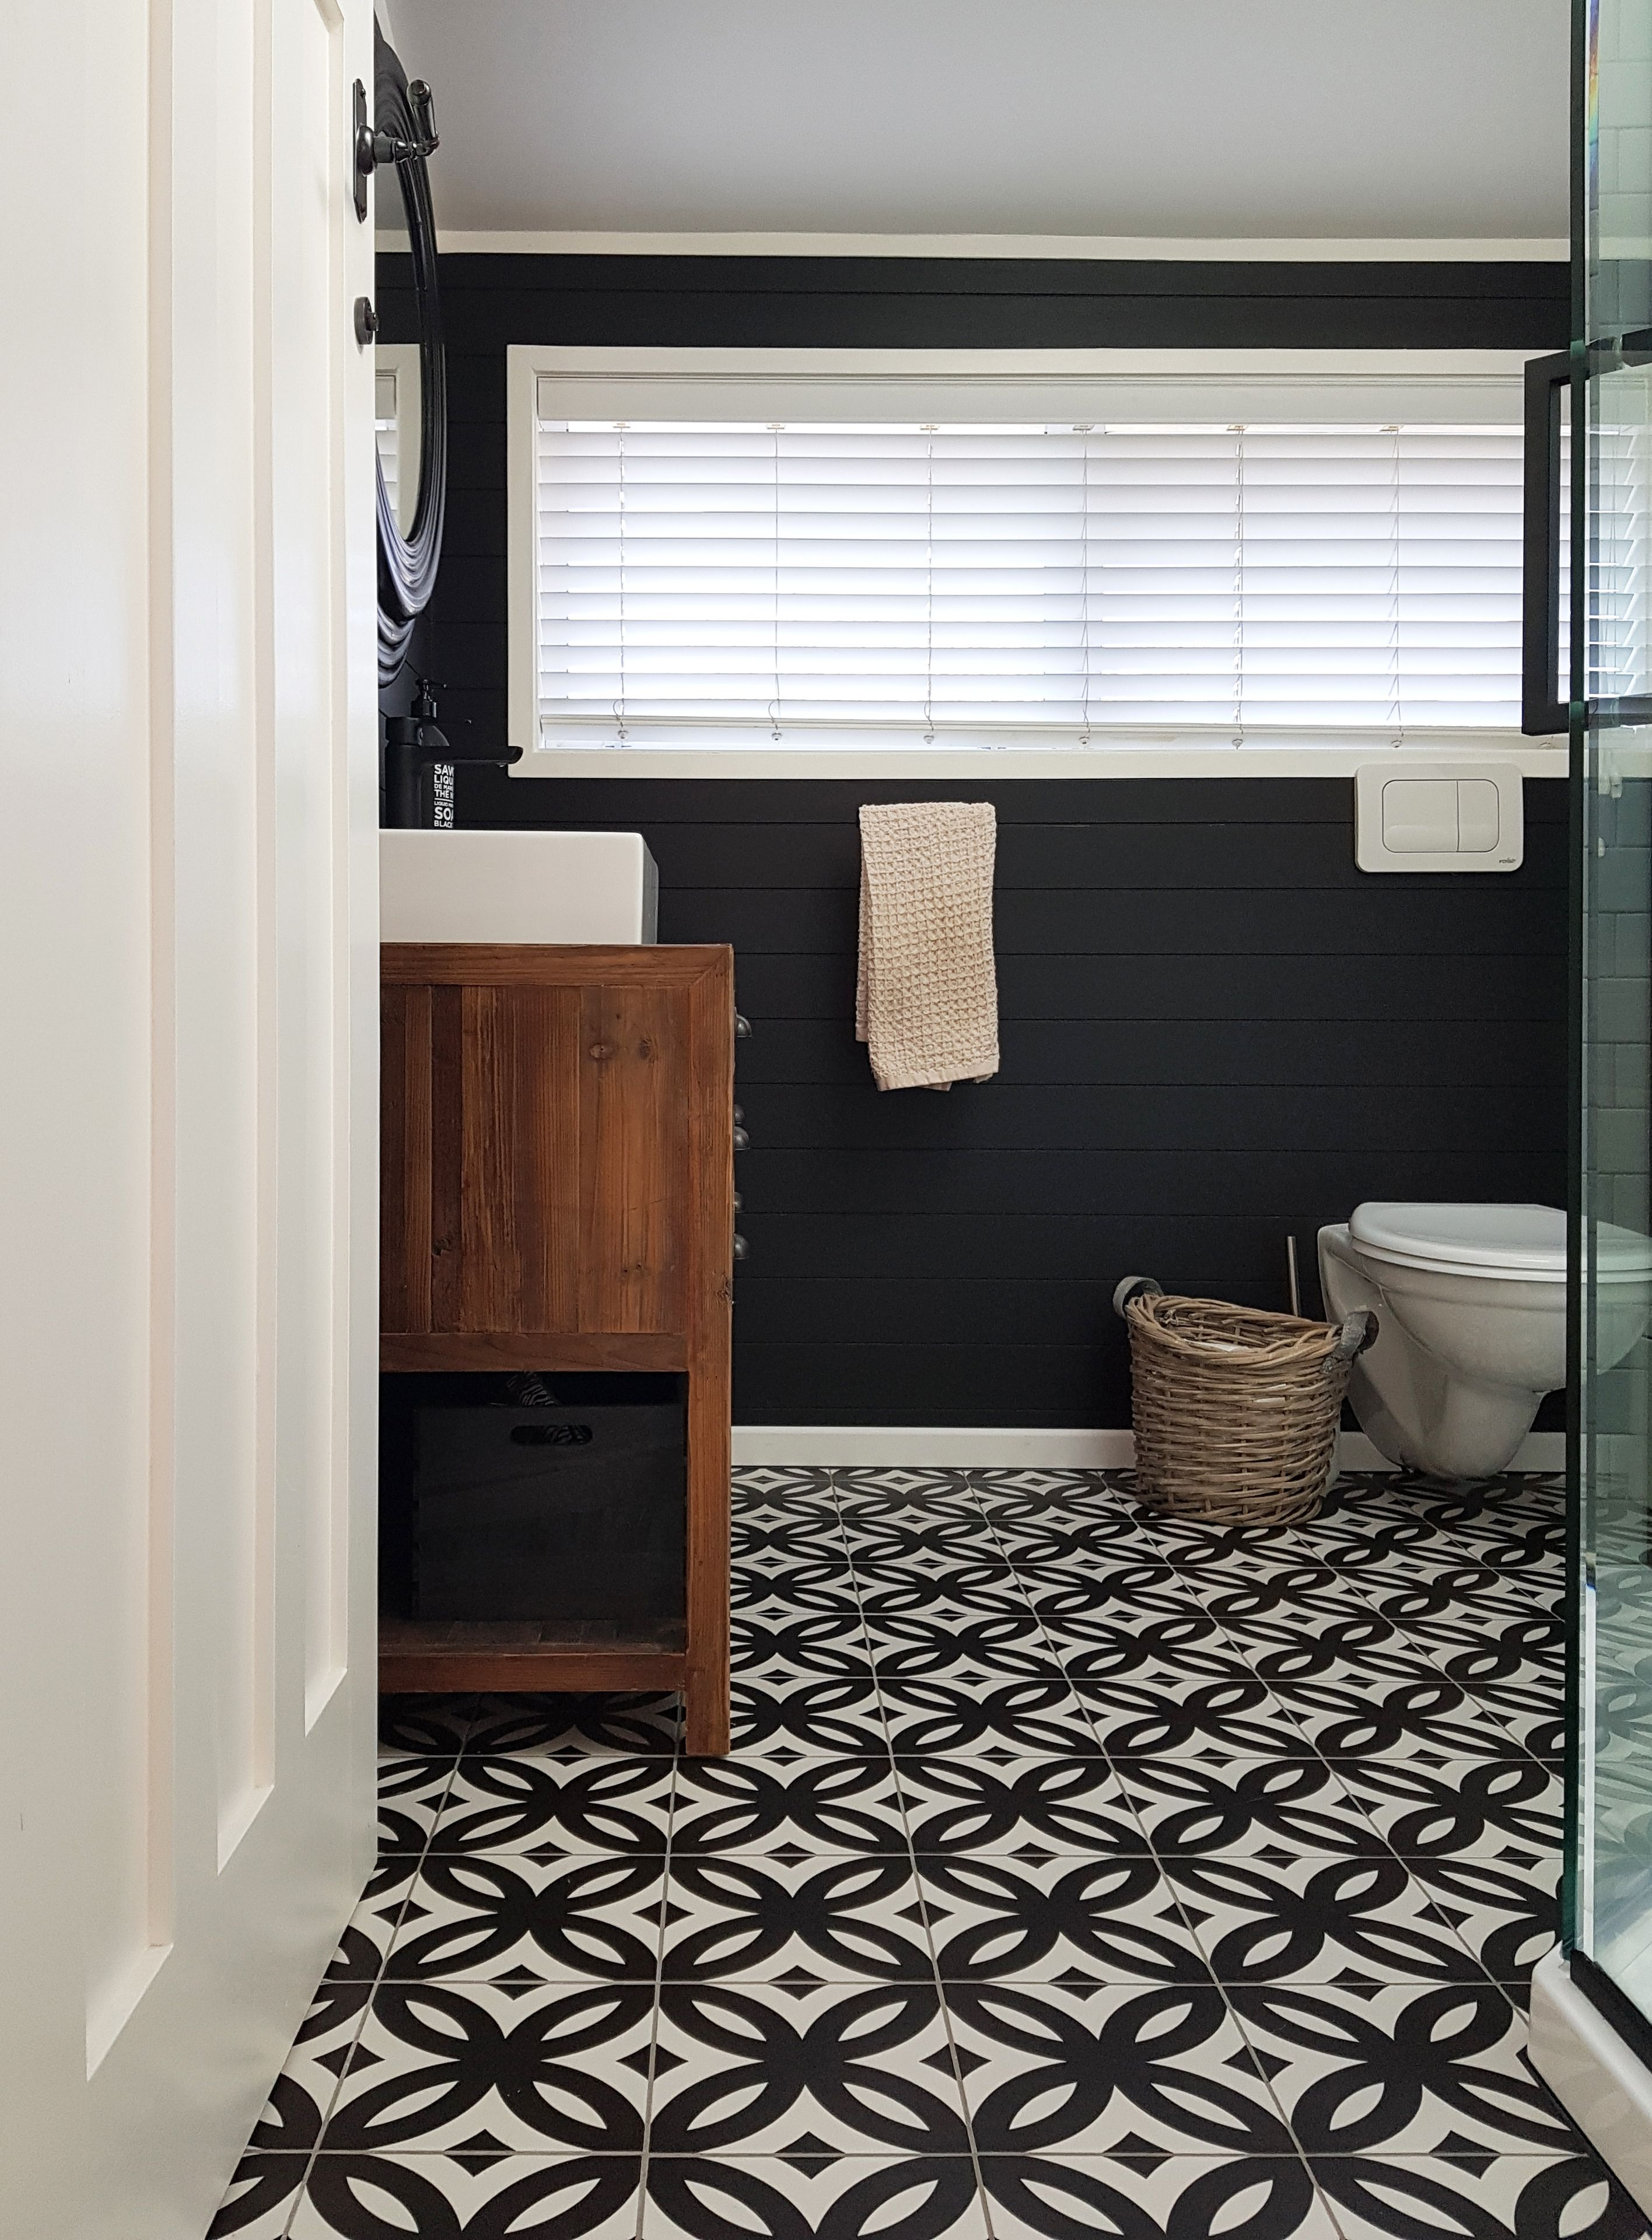 Bring Your Floors To Life With Patterned Tiles Flooring Tiles Tile Trends